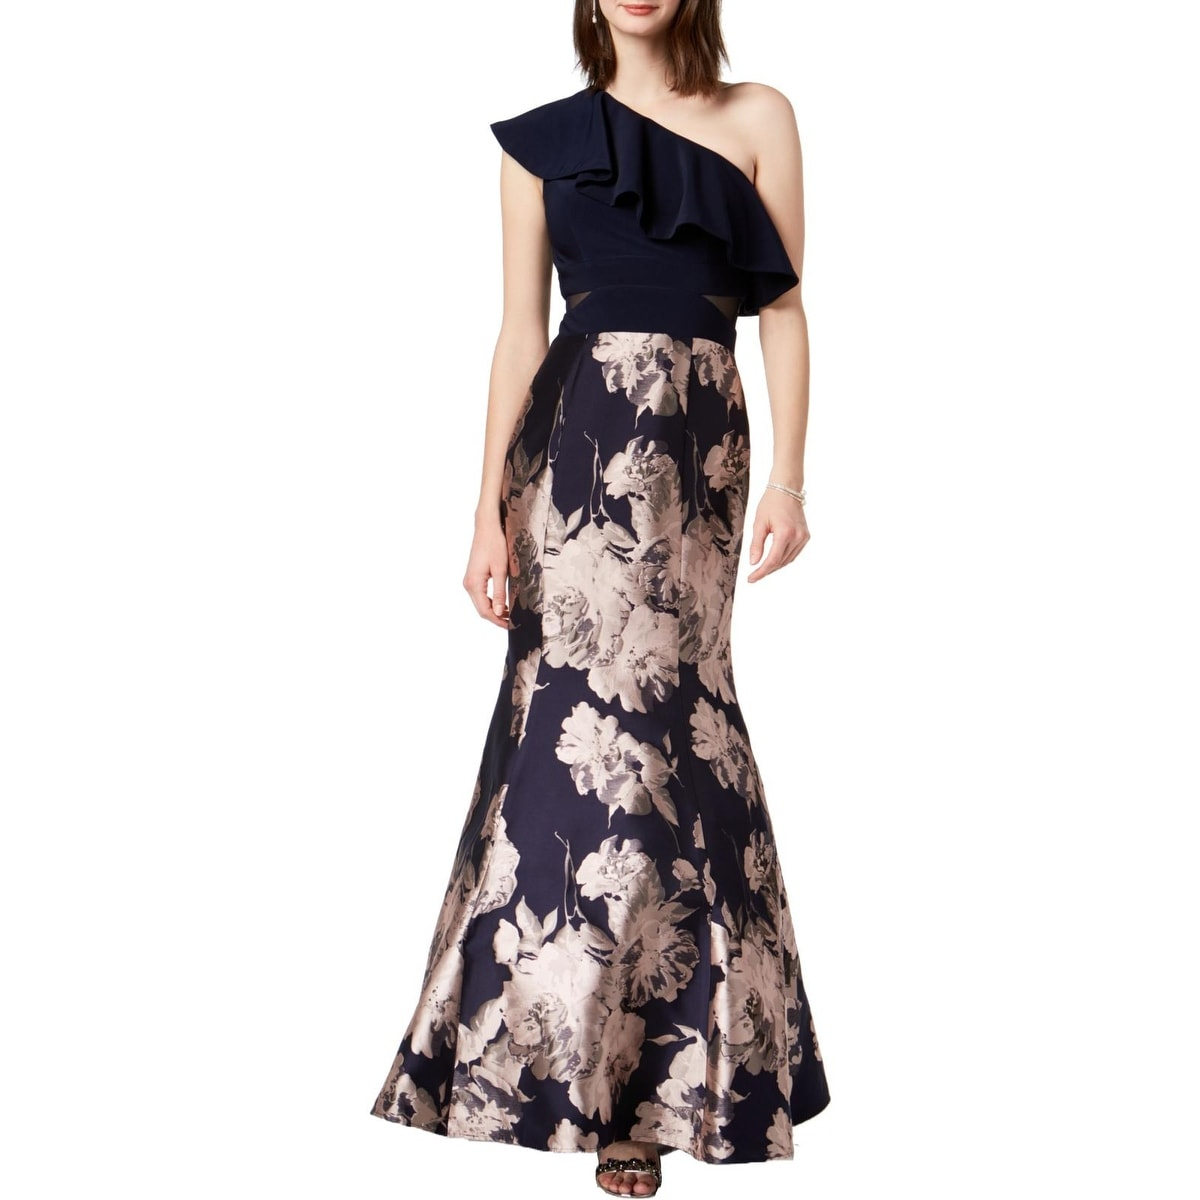 cea9984f92795 Shop Xscape Womens Evening Dress One Shoulder Floral Print - Free Shipping  Today - Overstock - 27619622